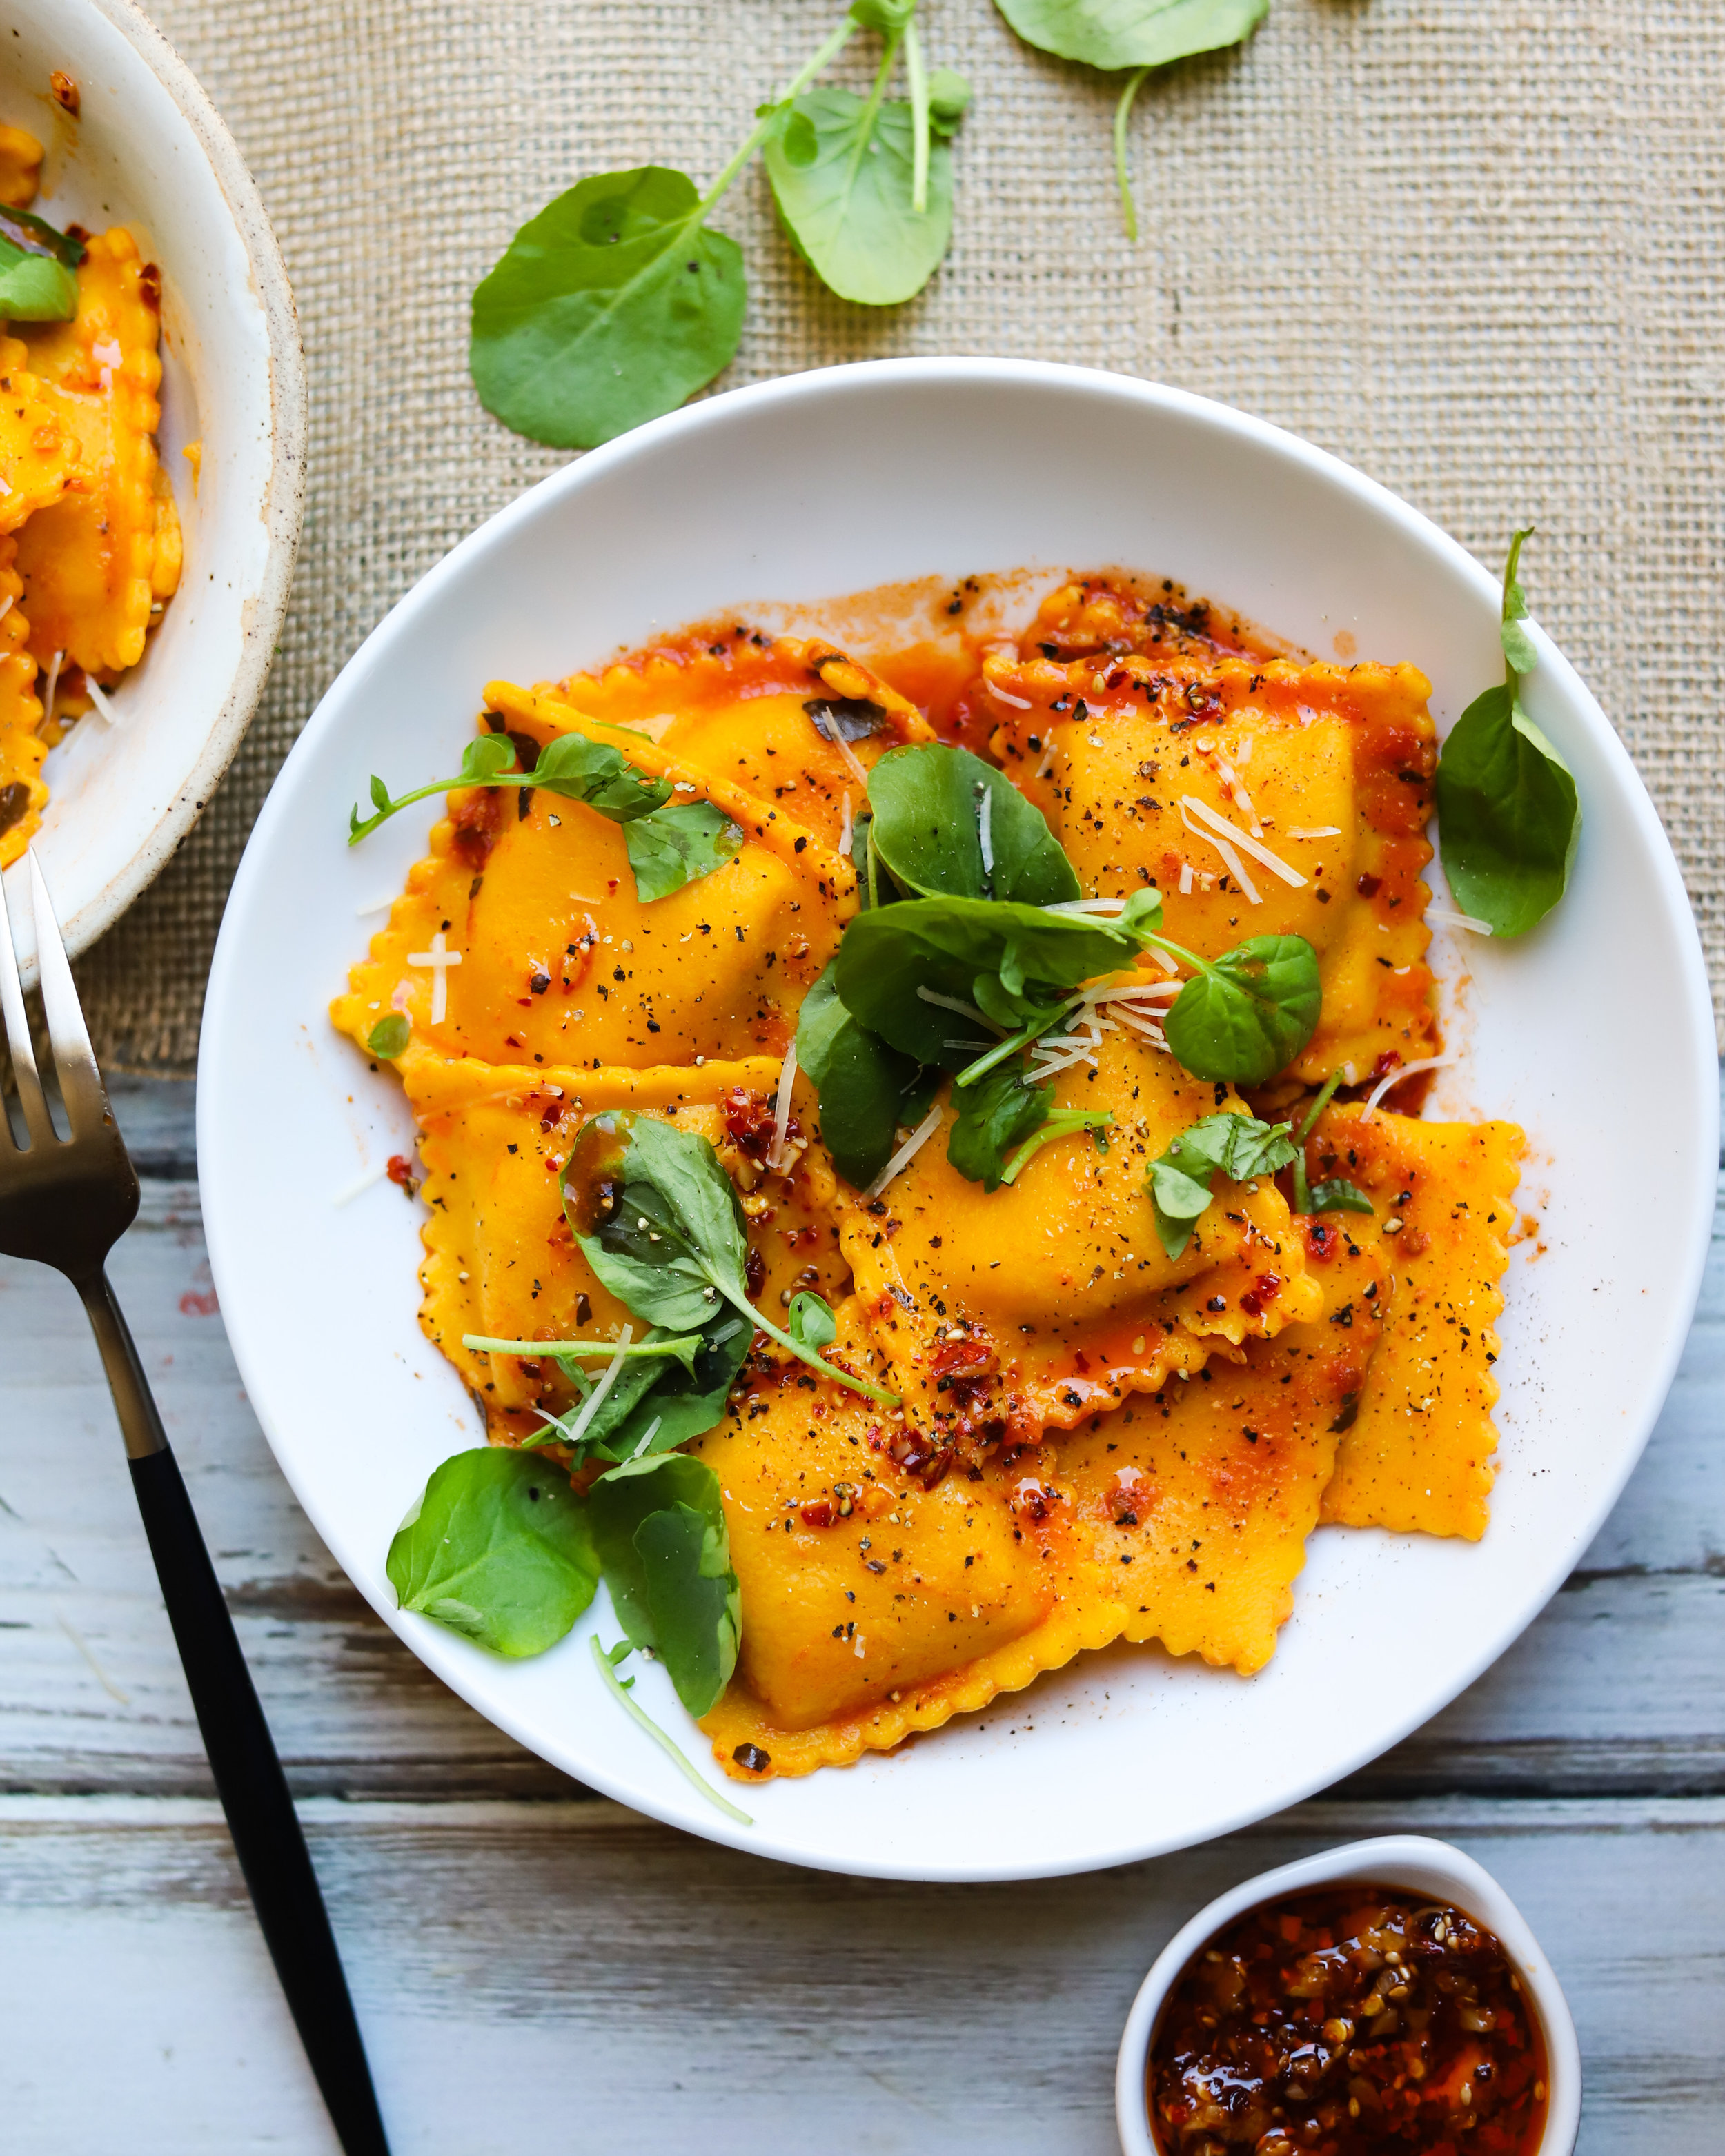 Butternut Squash Ravioli with Homemade Chili Oil Crunch